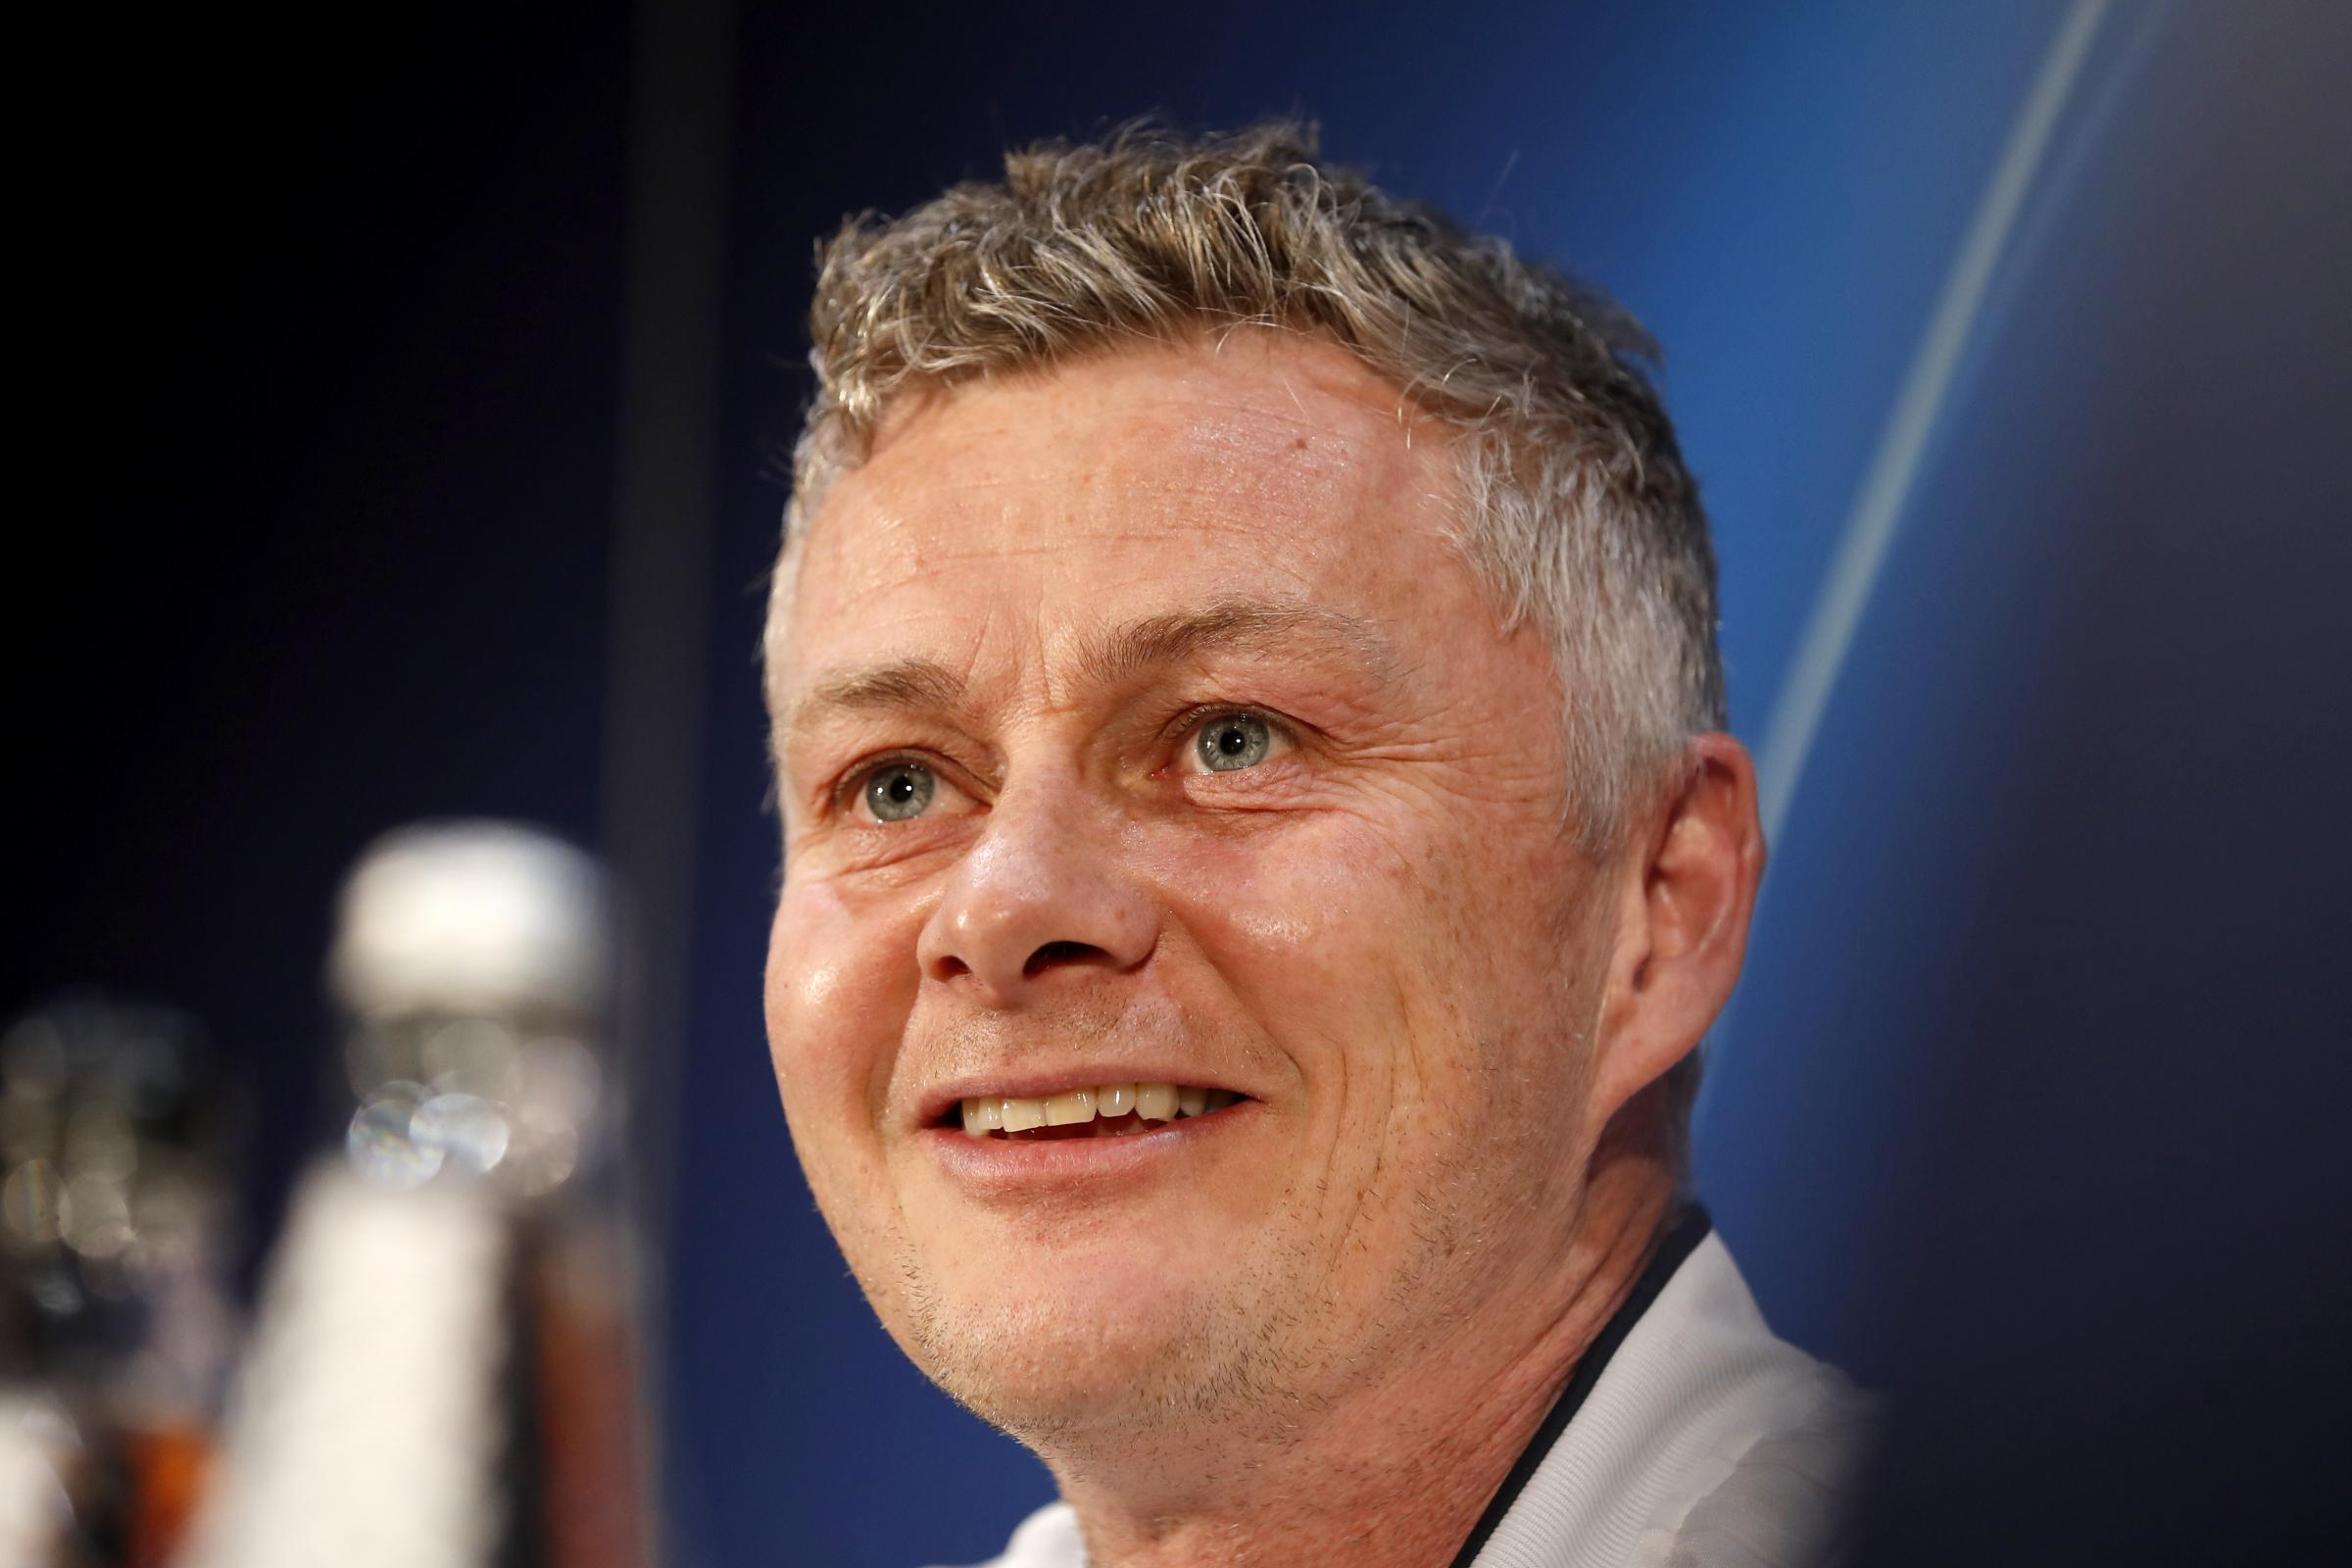 Ole Gunnar Solskjaer is hoping the Old Trafford crowd can help his side against Paris St Germain